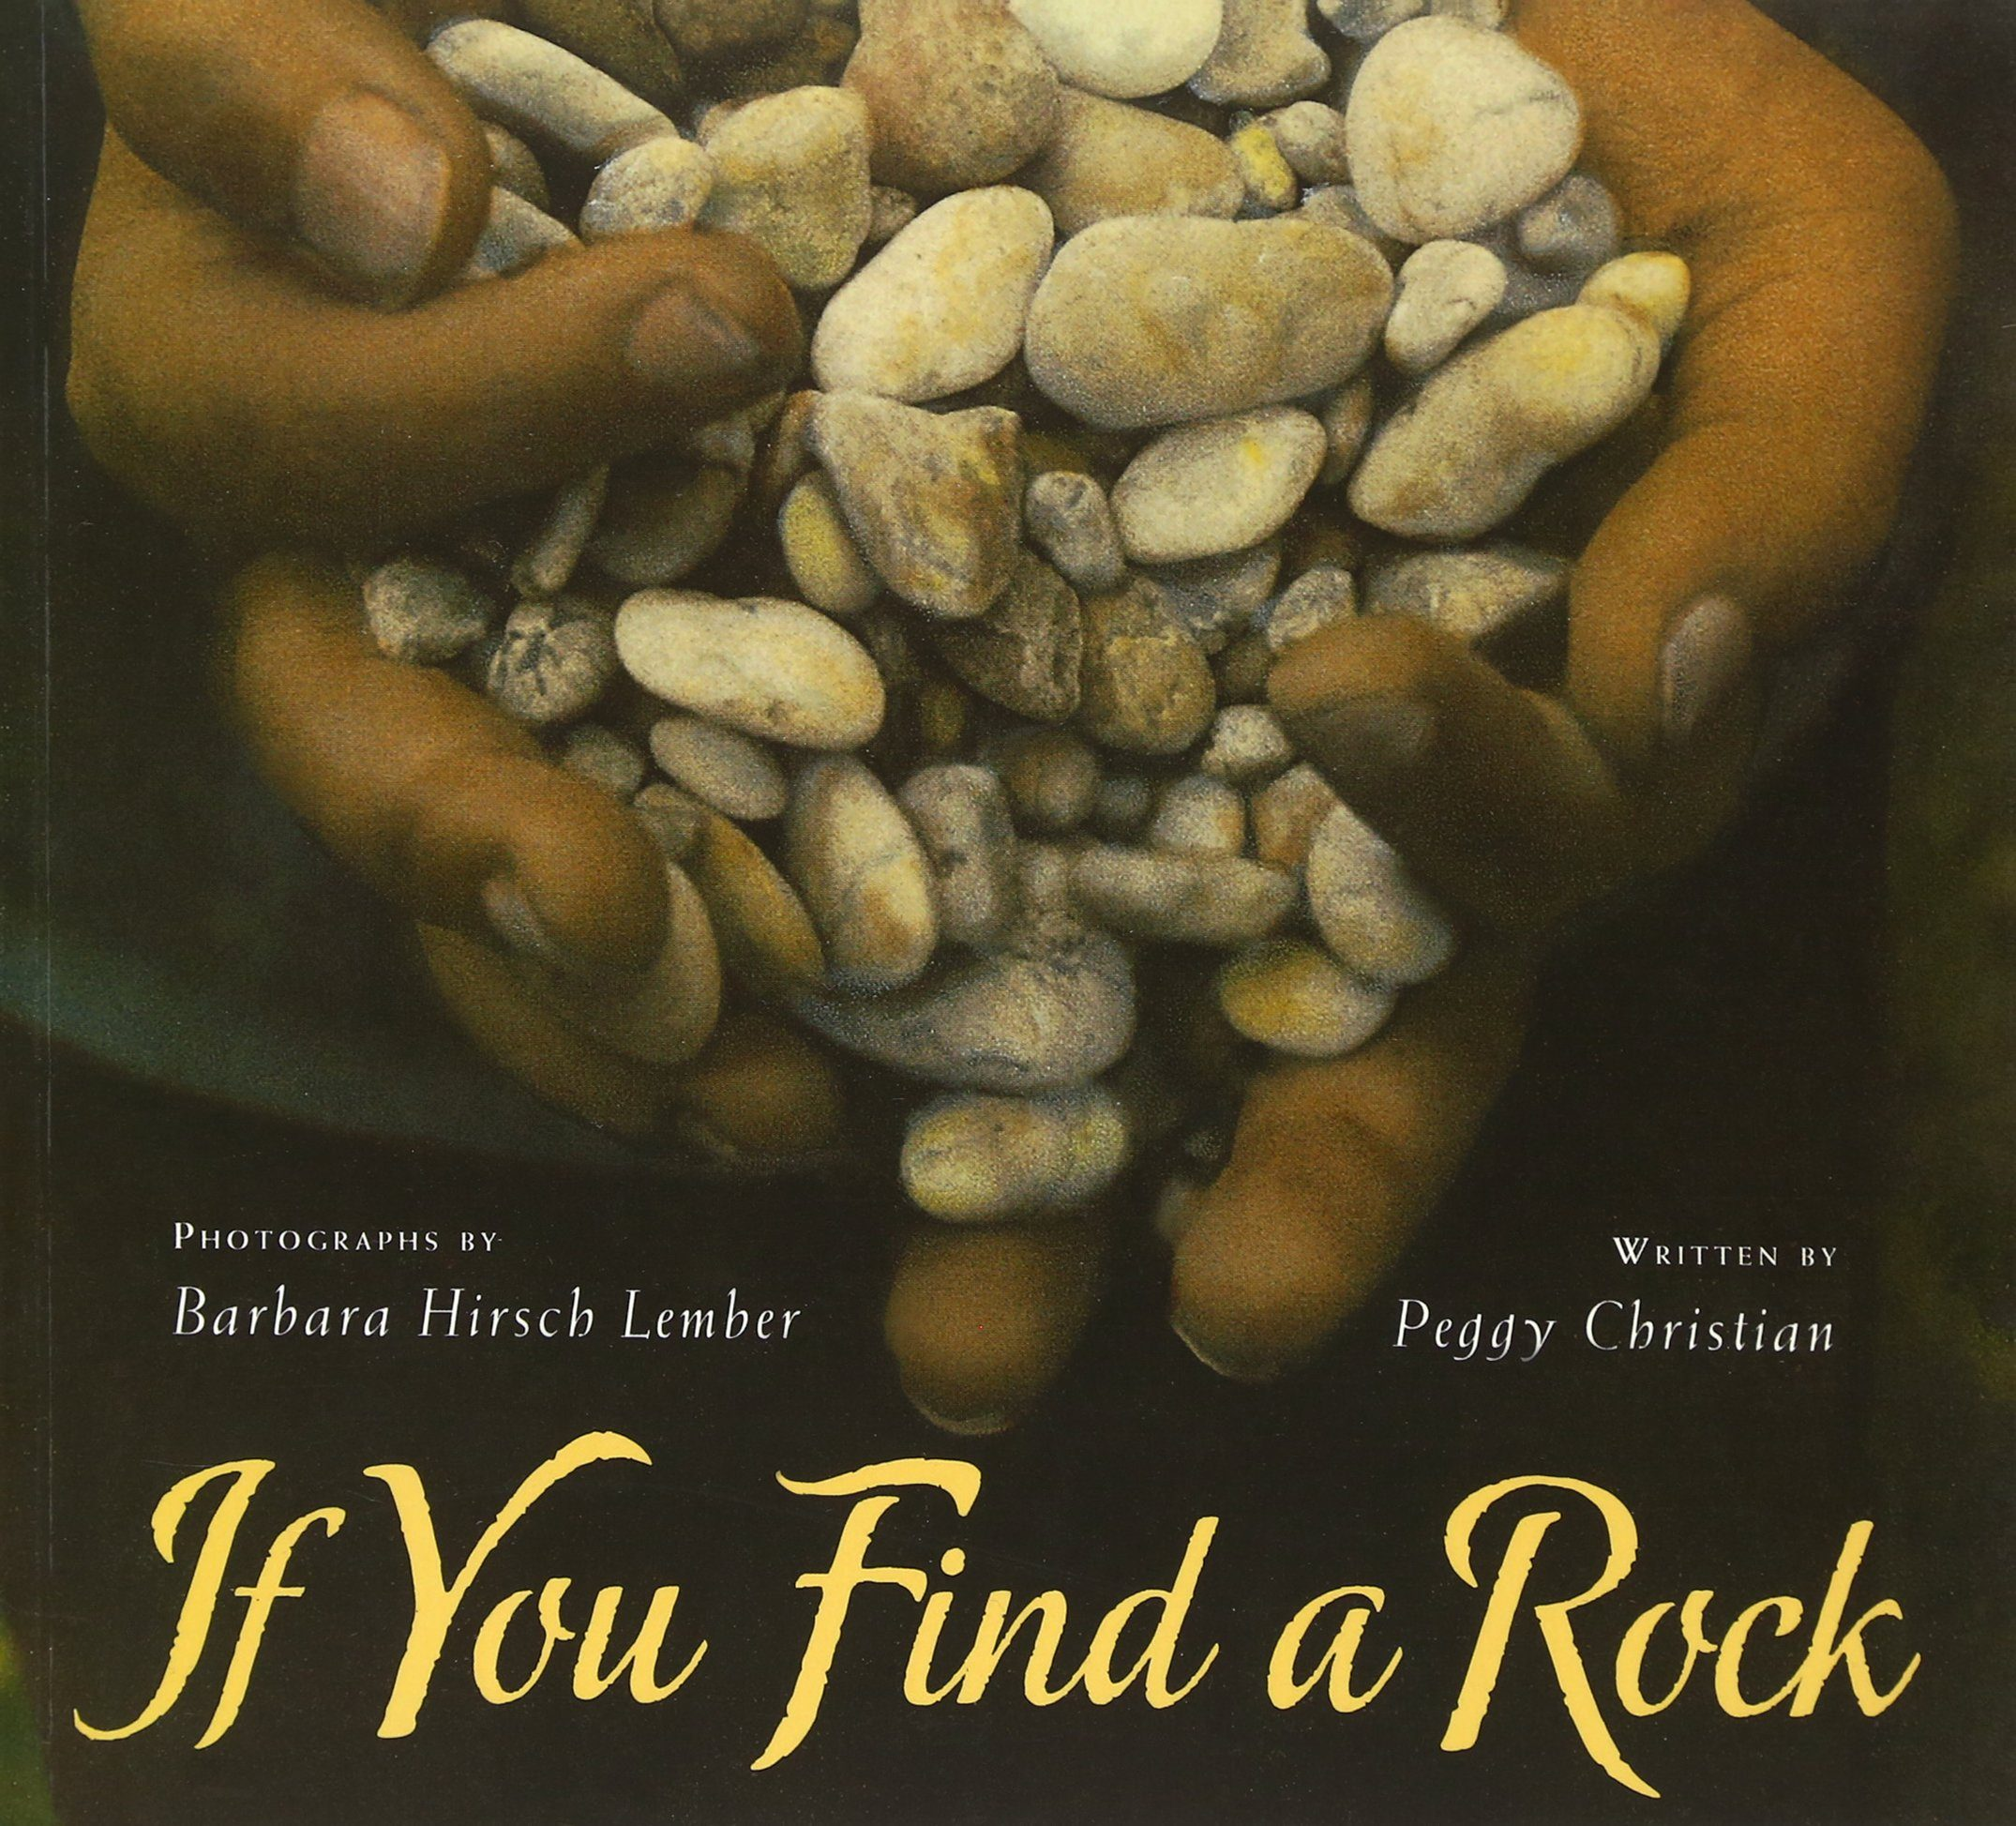 If you find a rock, childrens book